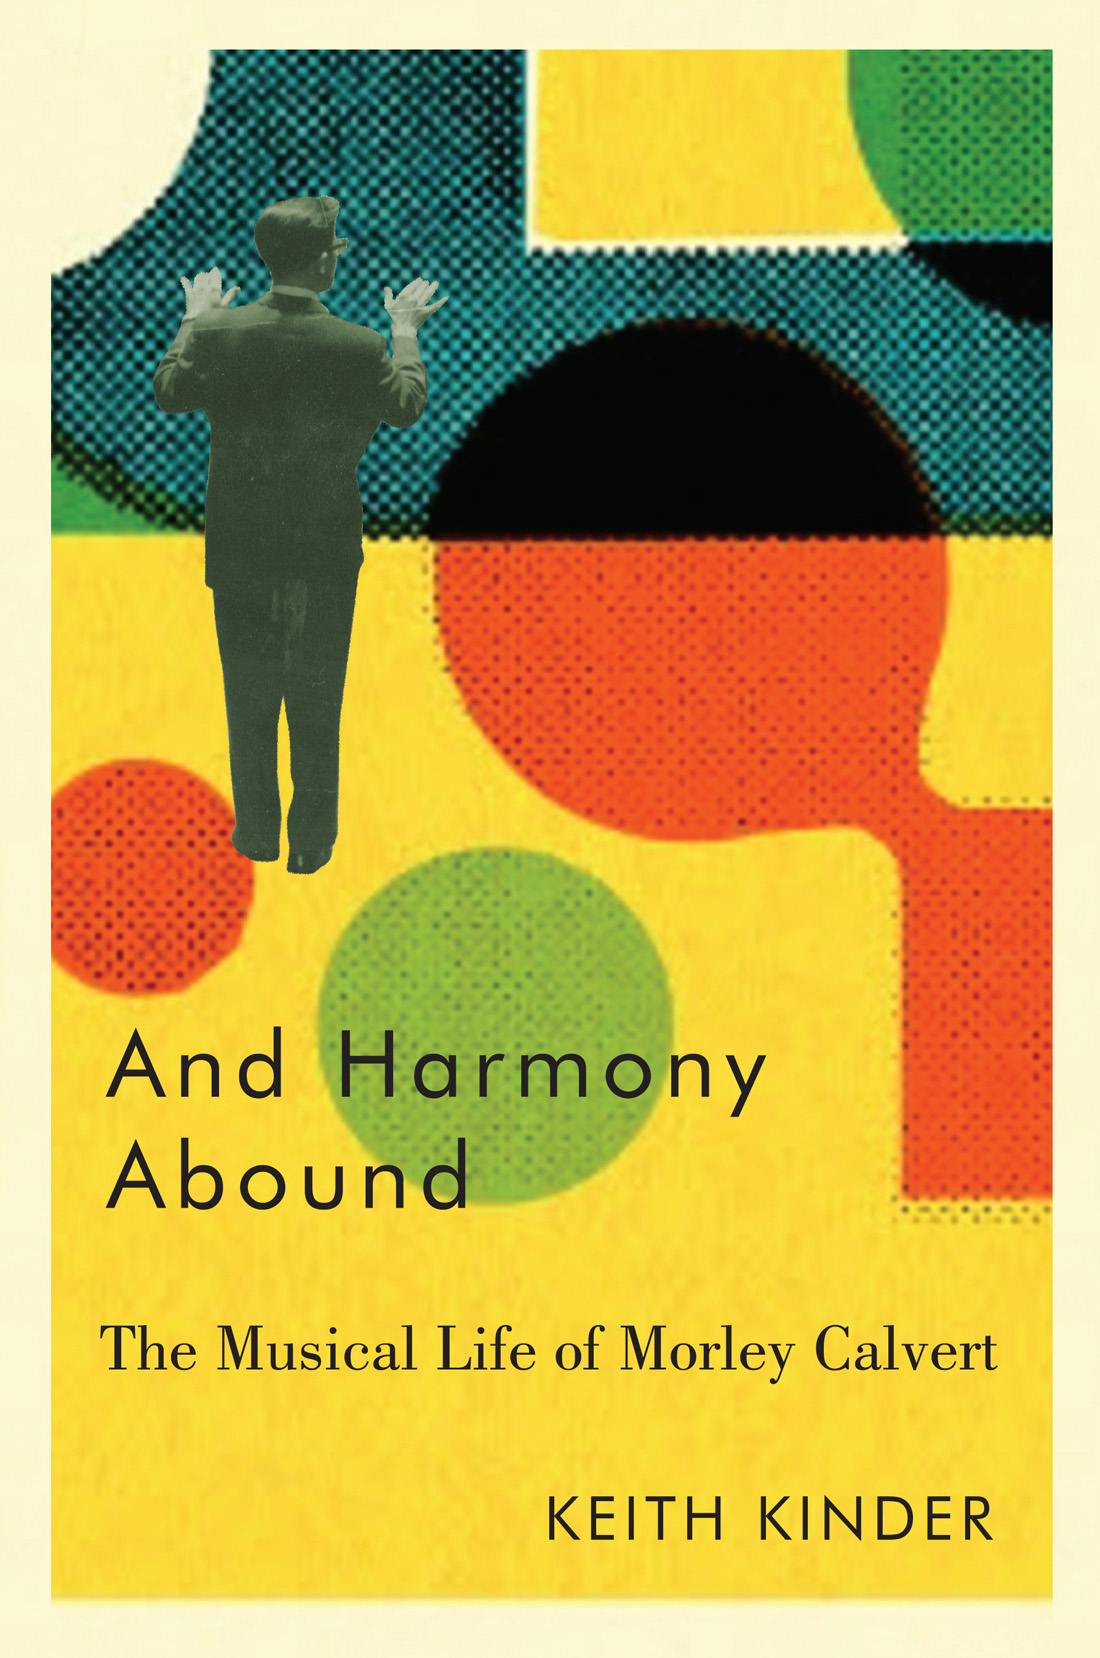 And Harmony Abound: The Musical Life of Morley Calvert